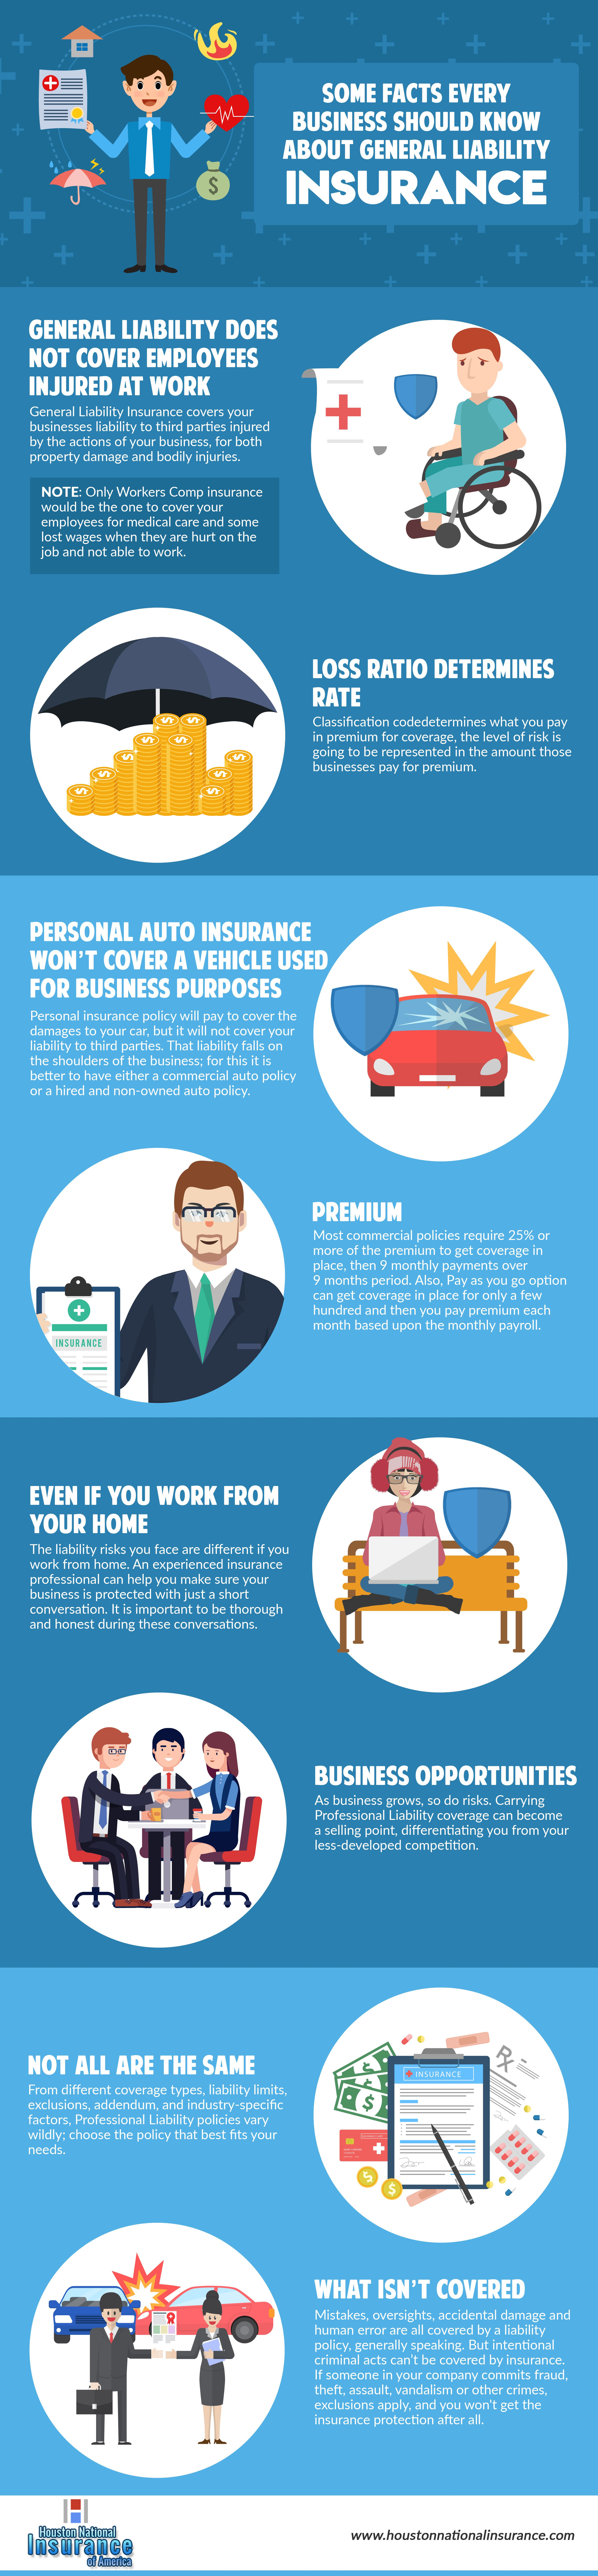 Read Here Some Facts Every Business Should Know About